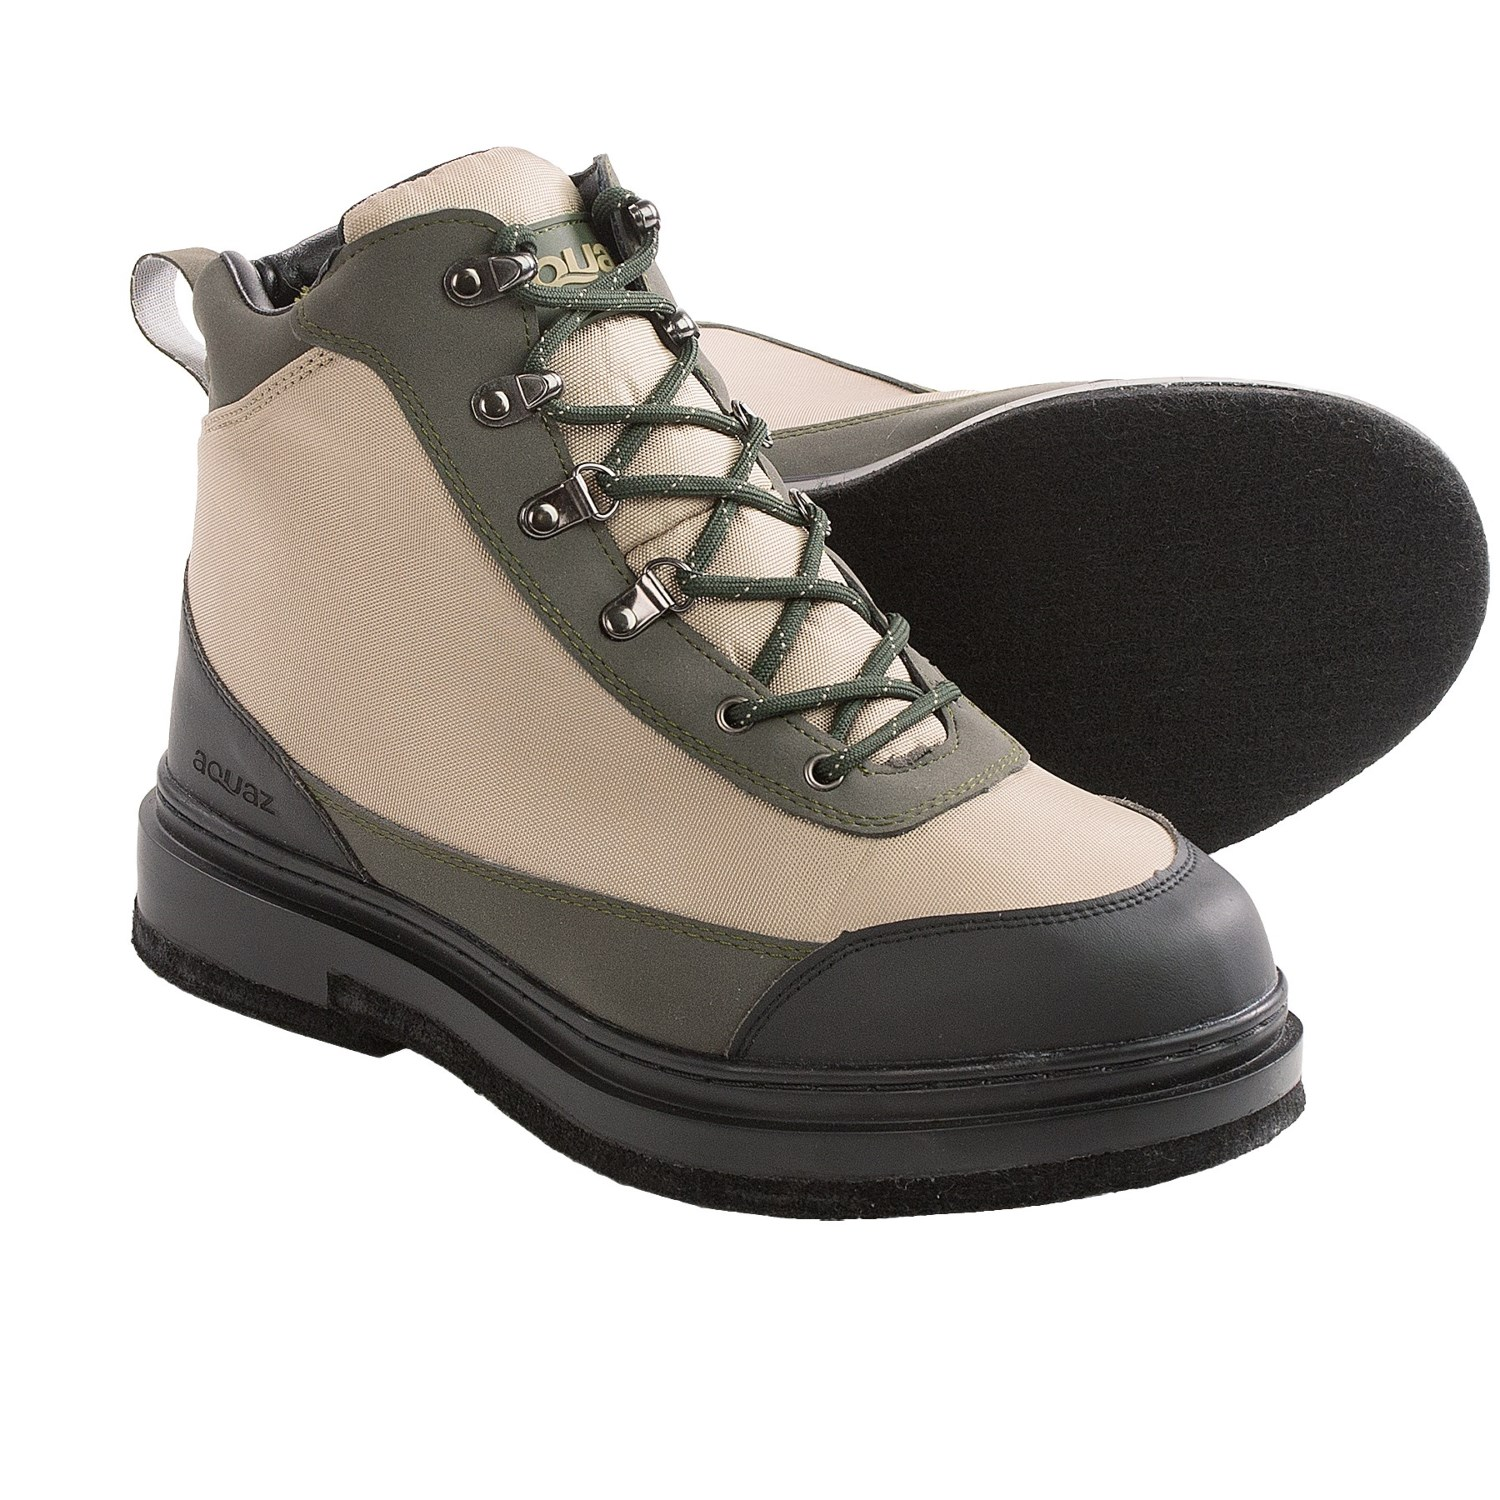 aquaz wading boots for and save 61